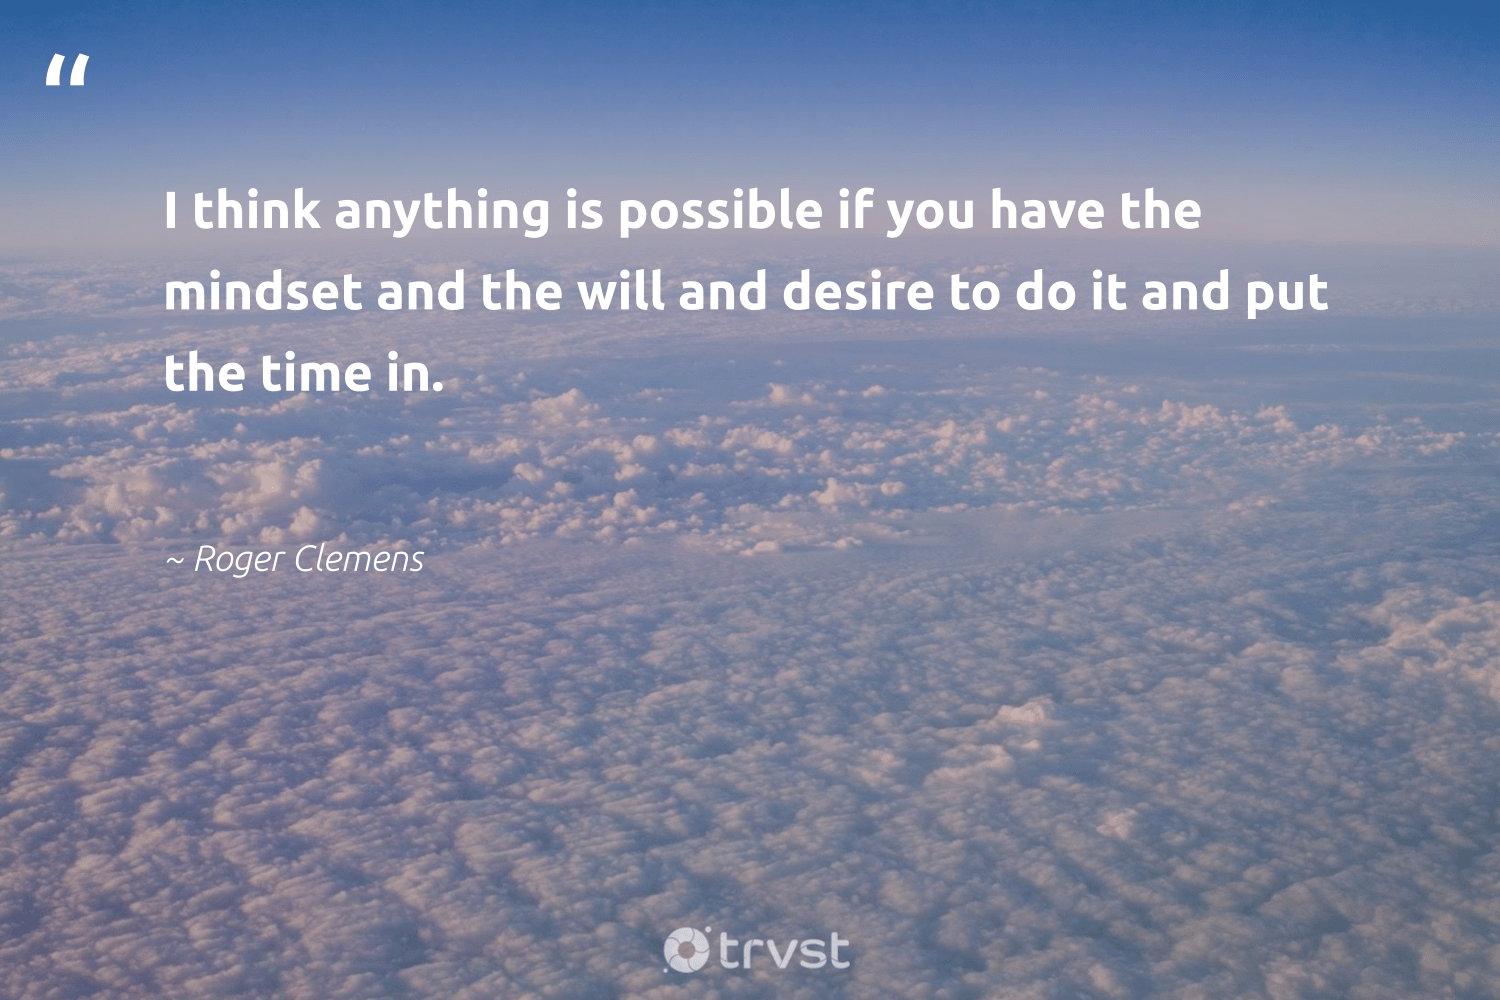 """""""I think anything is possible if you have the mindset and the will and desire to do it and put the time in.""""  - Roger Clemens #trvst #quotes #mindset #creativemindset #begreat #nevergiveup #impact #meditate #changemakers #health #collectiveaction #motivation"""